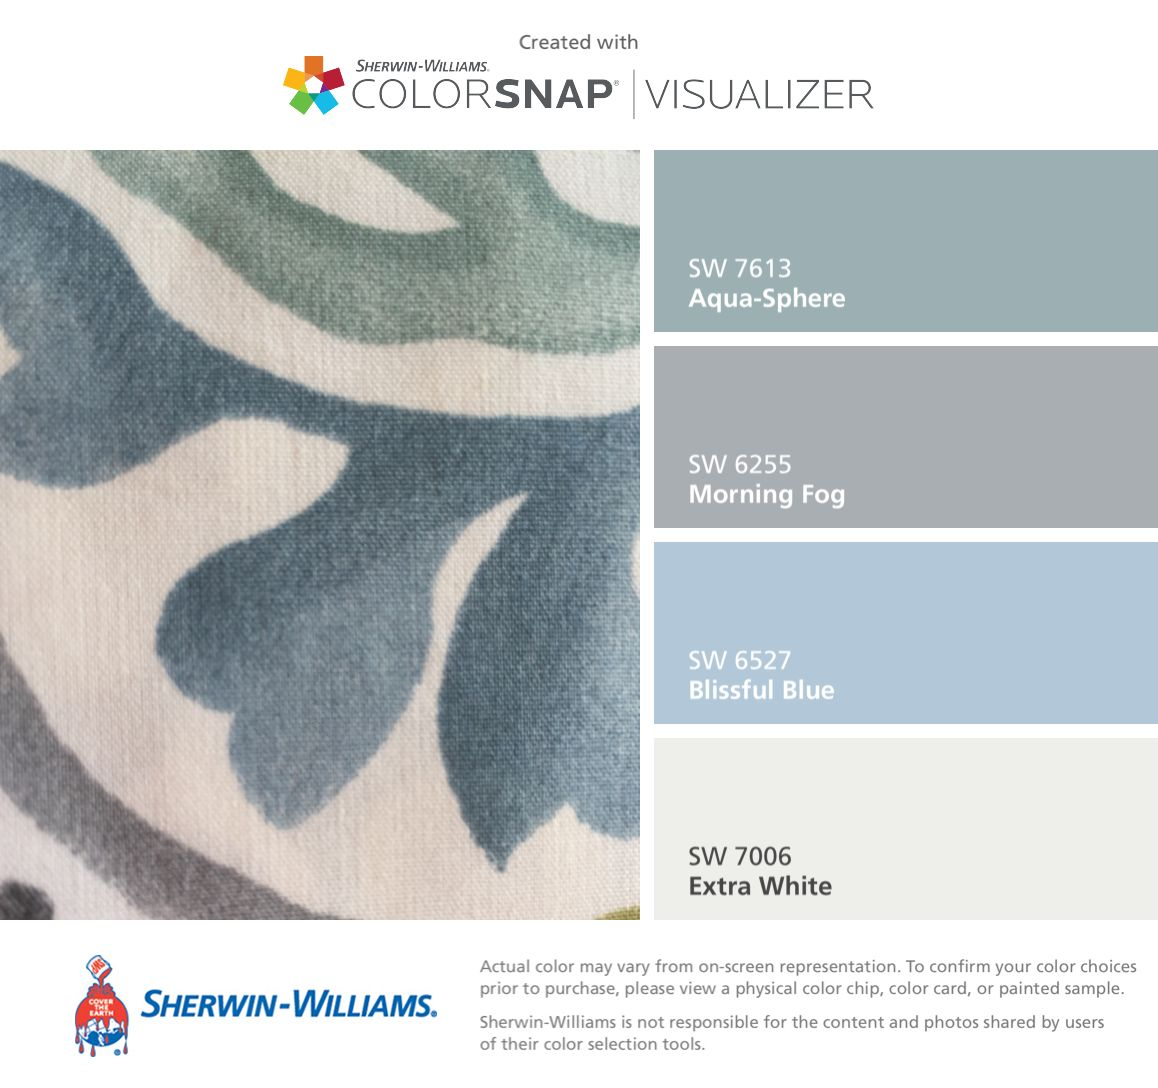 I Found These Colors With Colorsnap Visualizer For Iphone By Sherwin Williams Aqua Sphere Sw 7613 Matching Paint Colors Boy Room Paint Paint Colors For Home